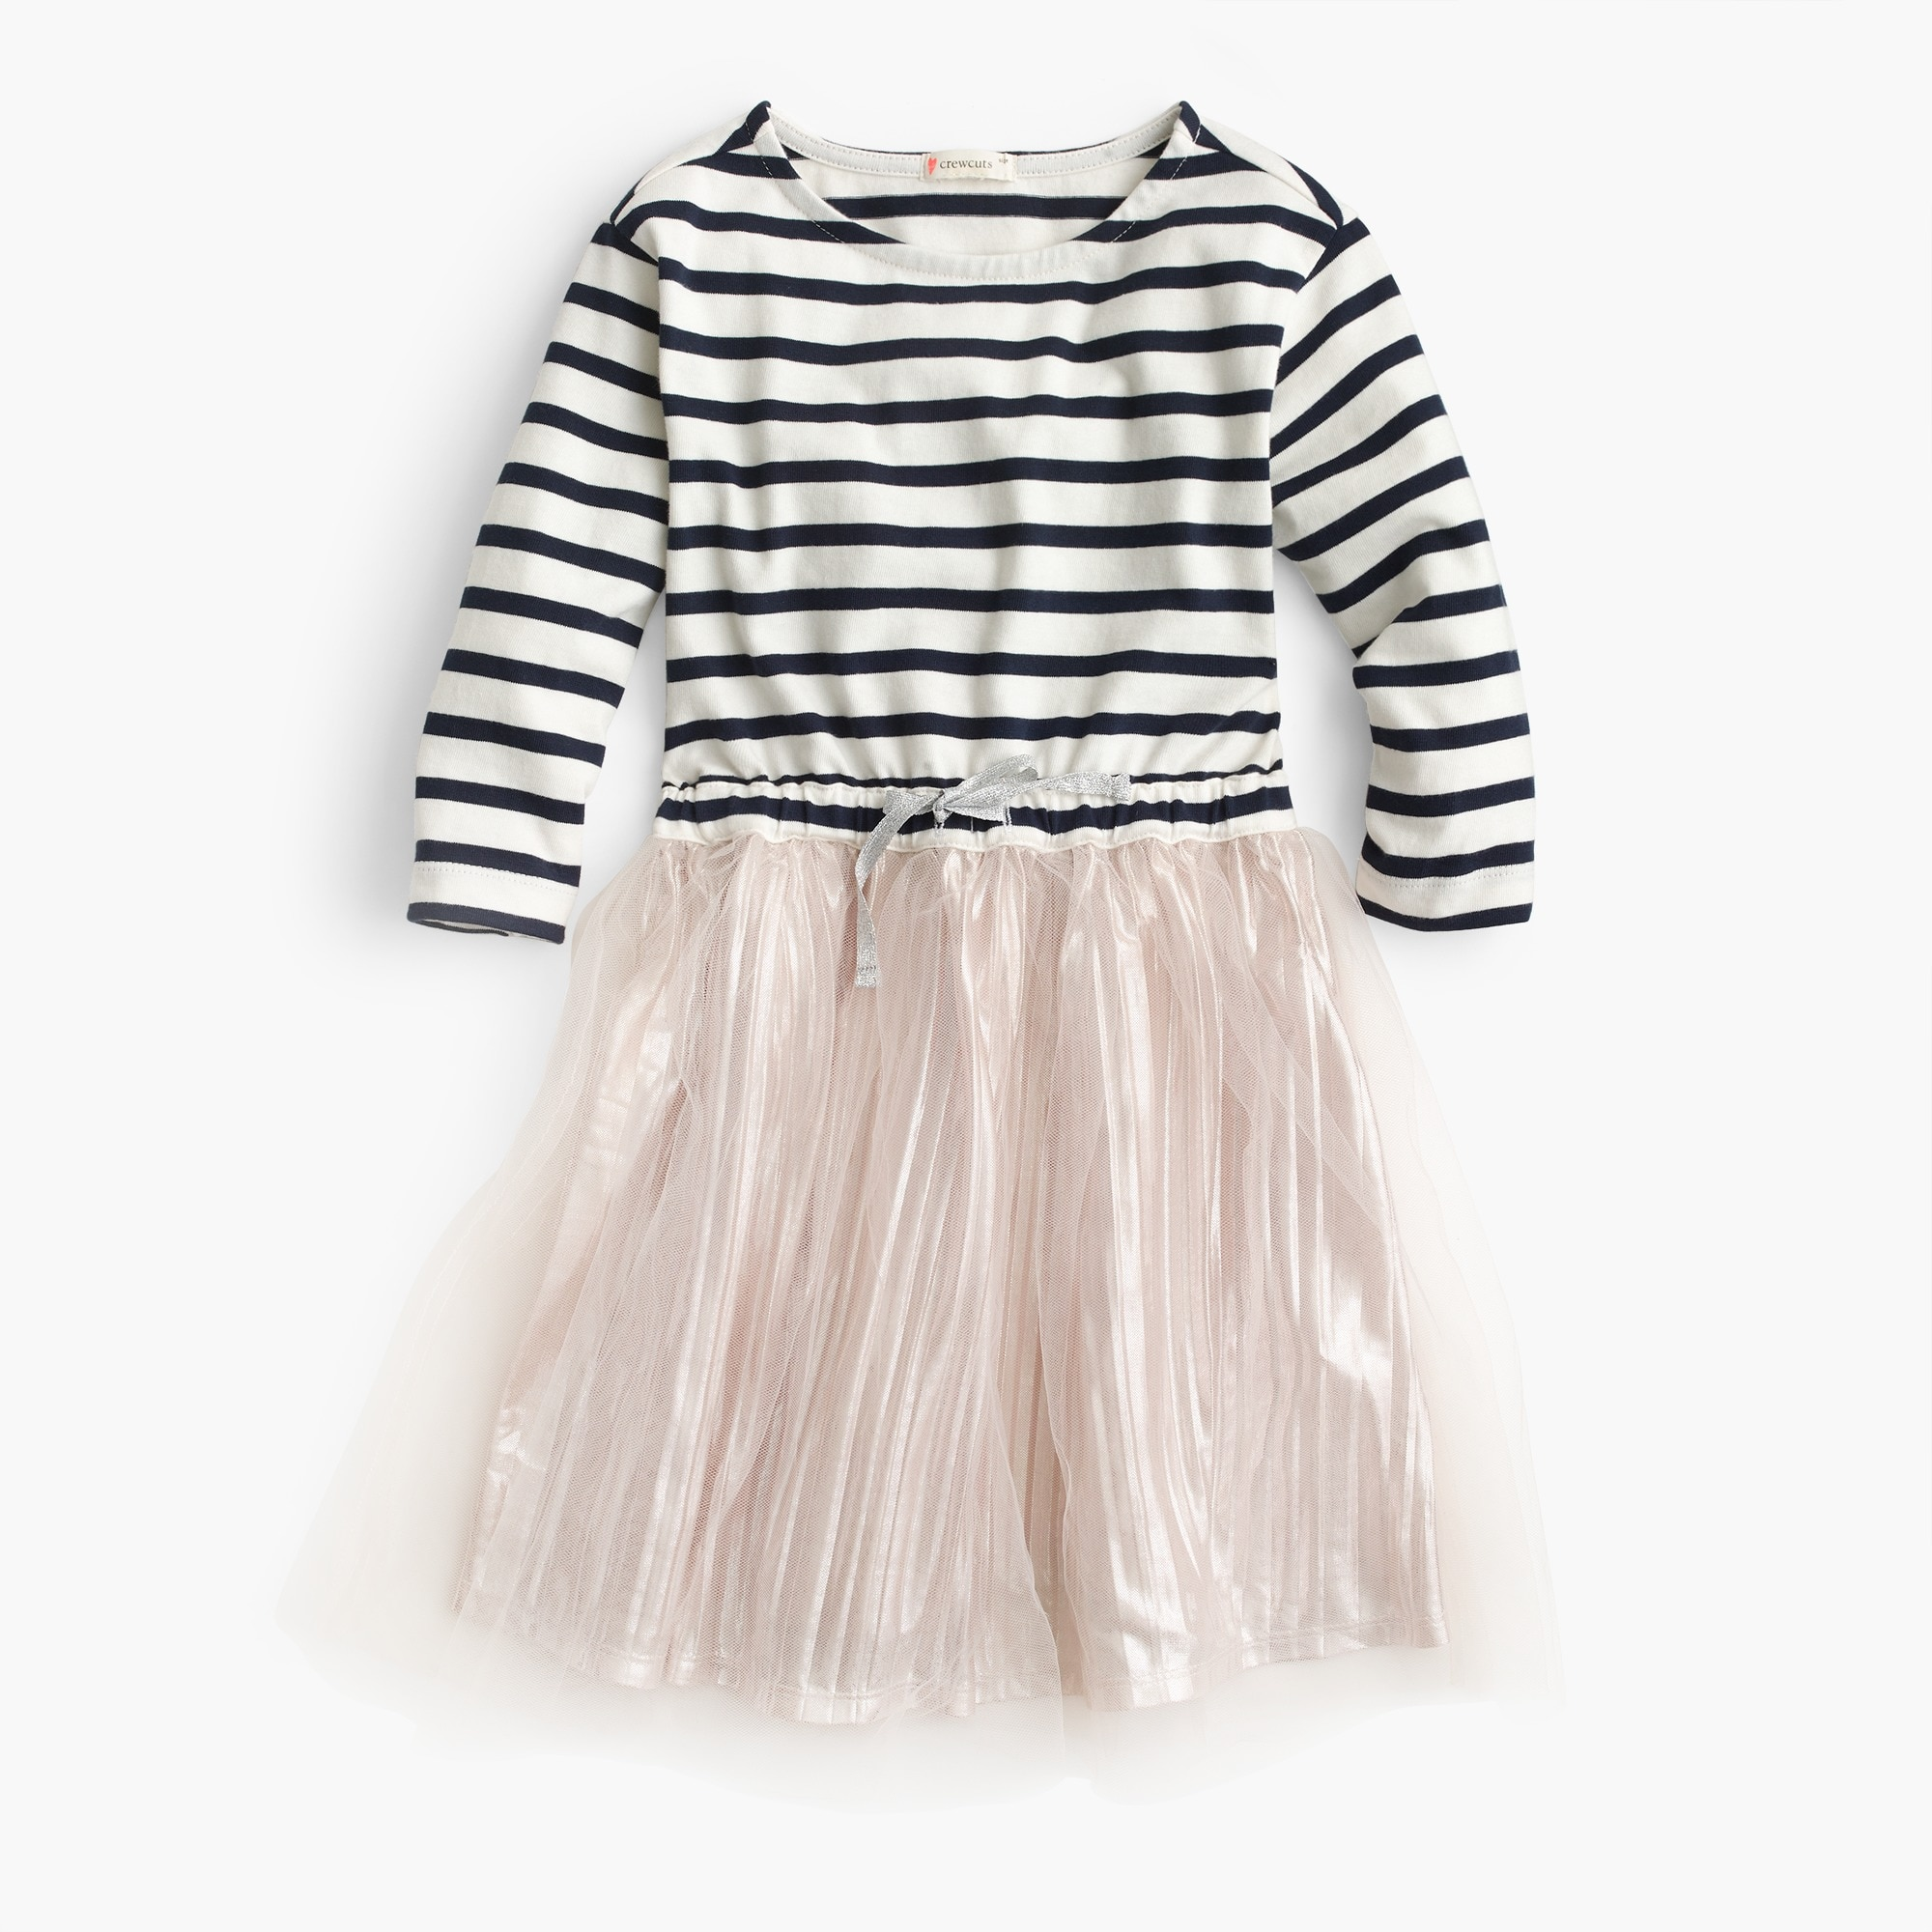 Girls' stripe-and-shimmer dress girl dresses c